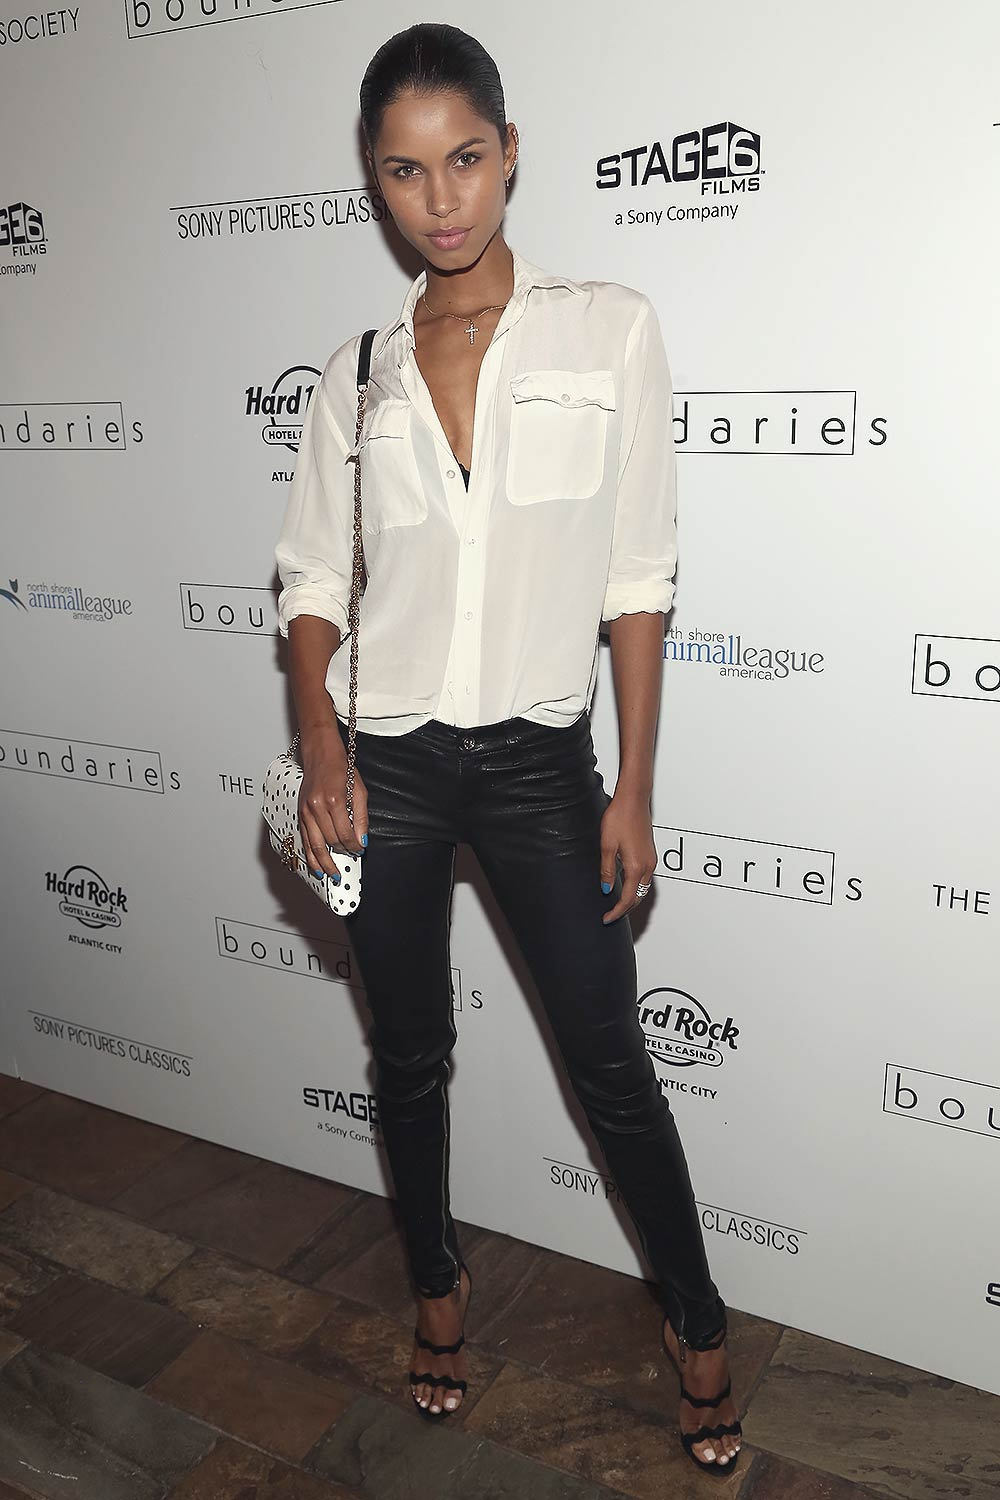 Daiane Sodre attends Screening of Sony Pictures Classics 'Boundaries'